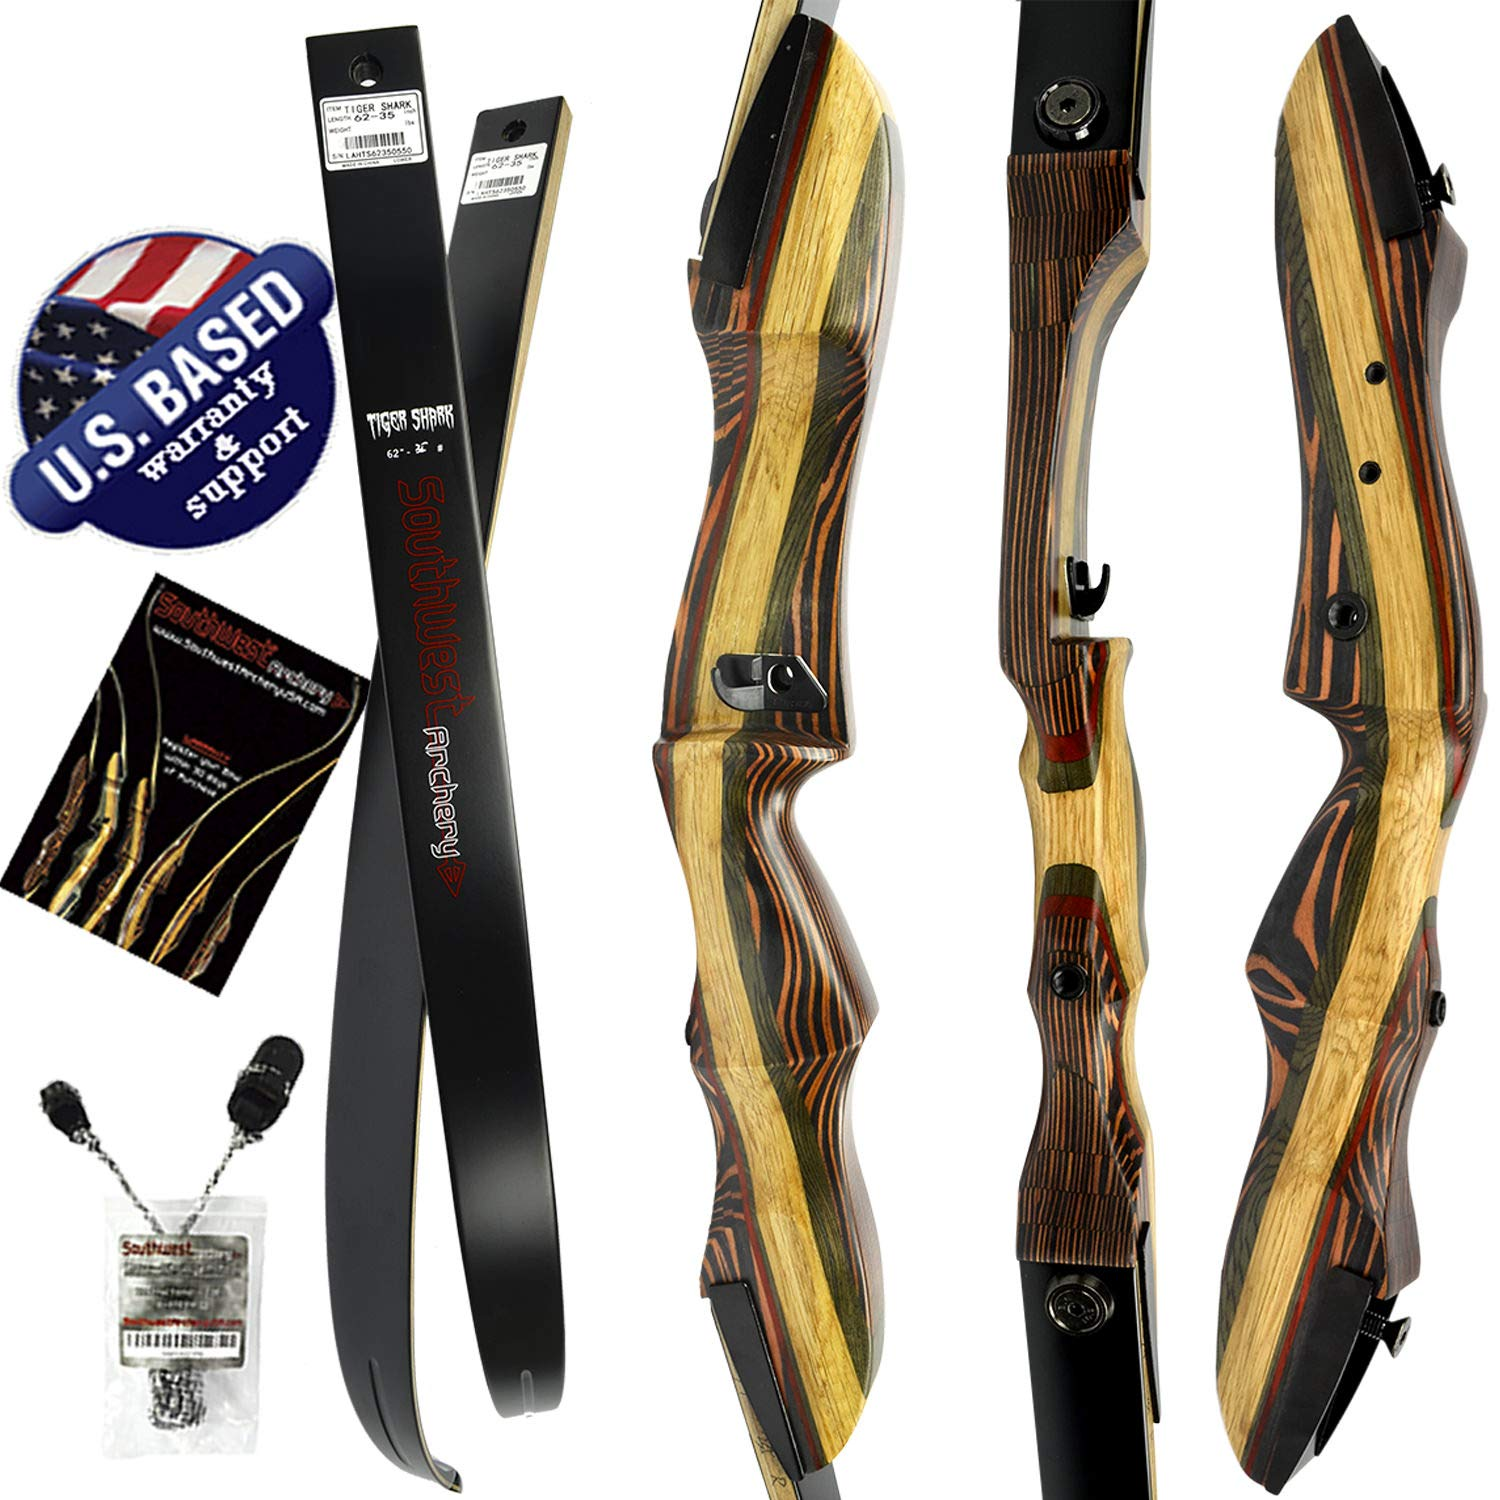 Southwest Archery TigerShark Takedown Recurve Bow - 29R w/ Stringer